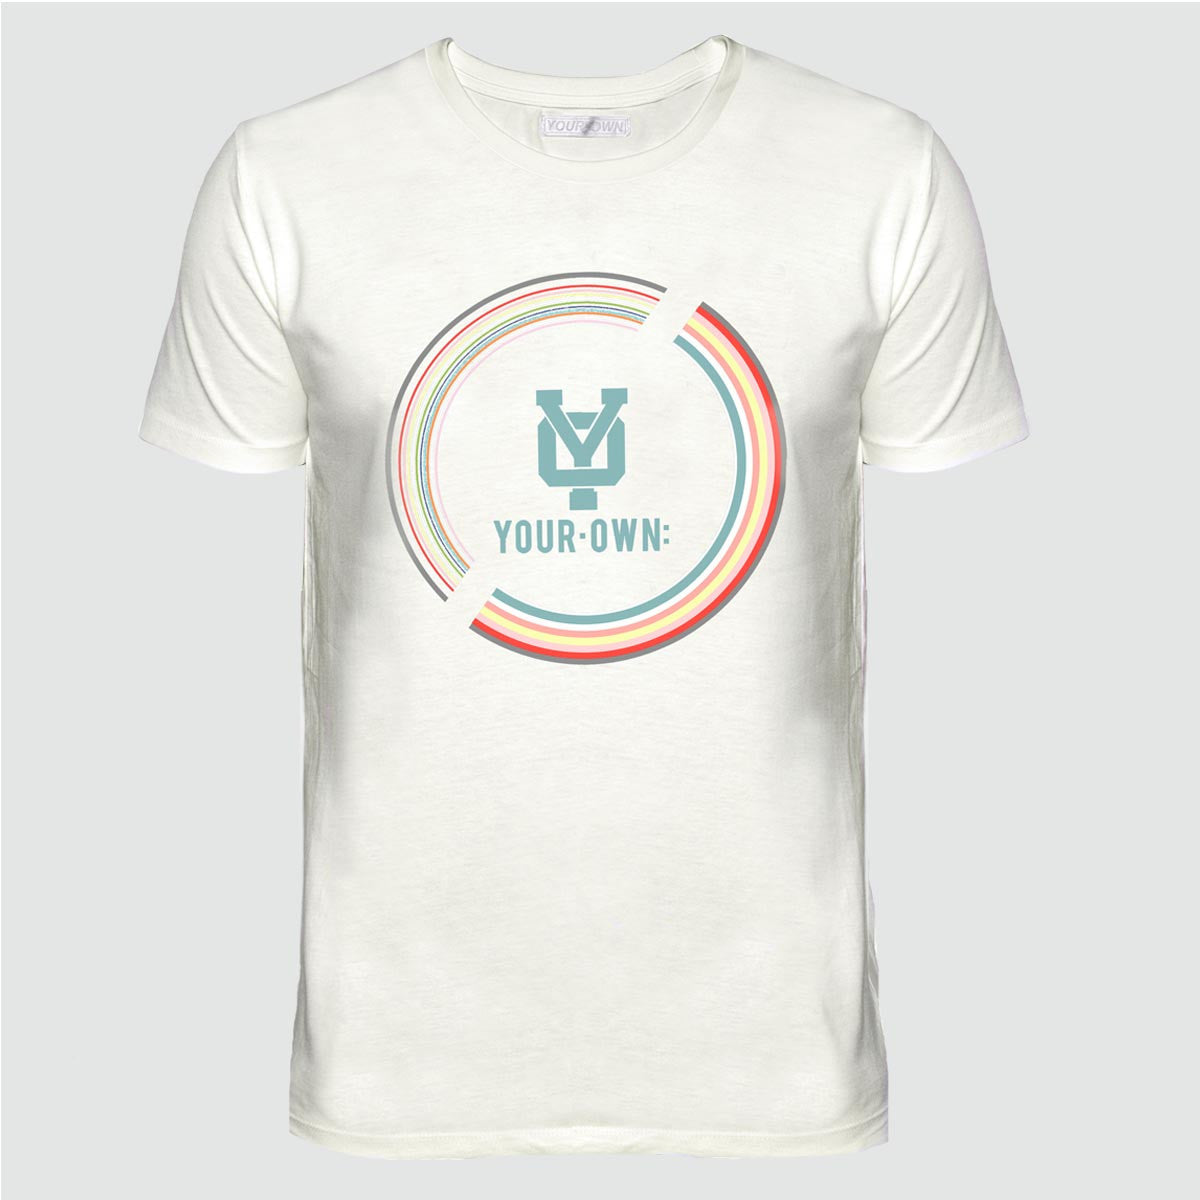 YO 'BOSA' T SHIRT CREAM